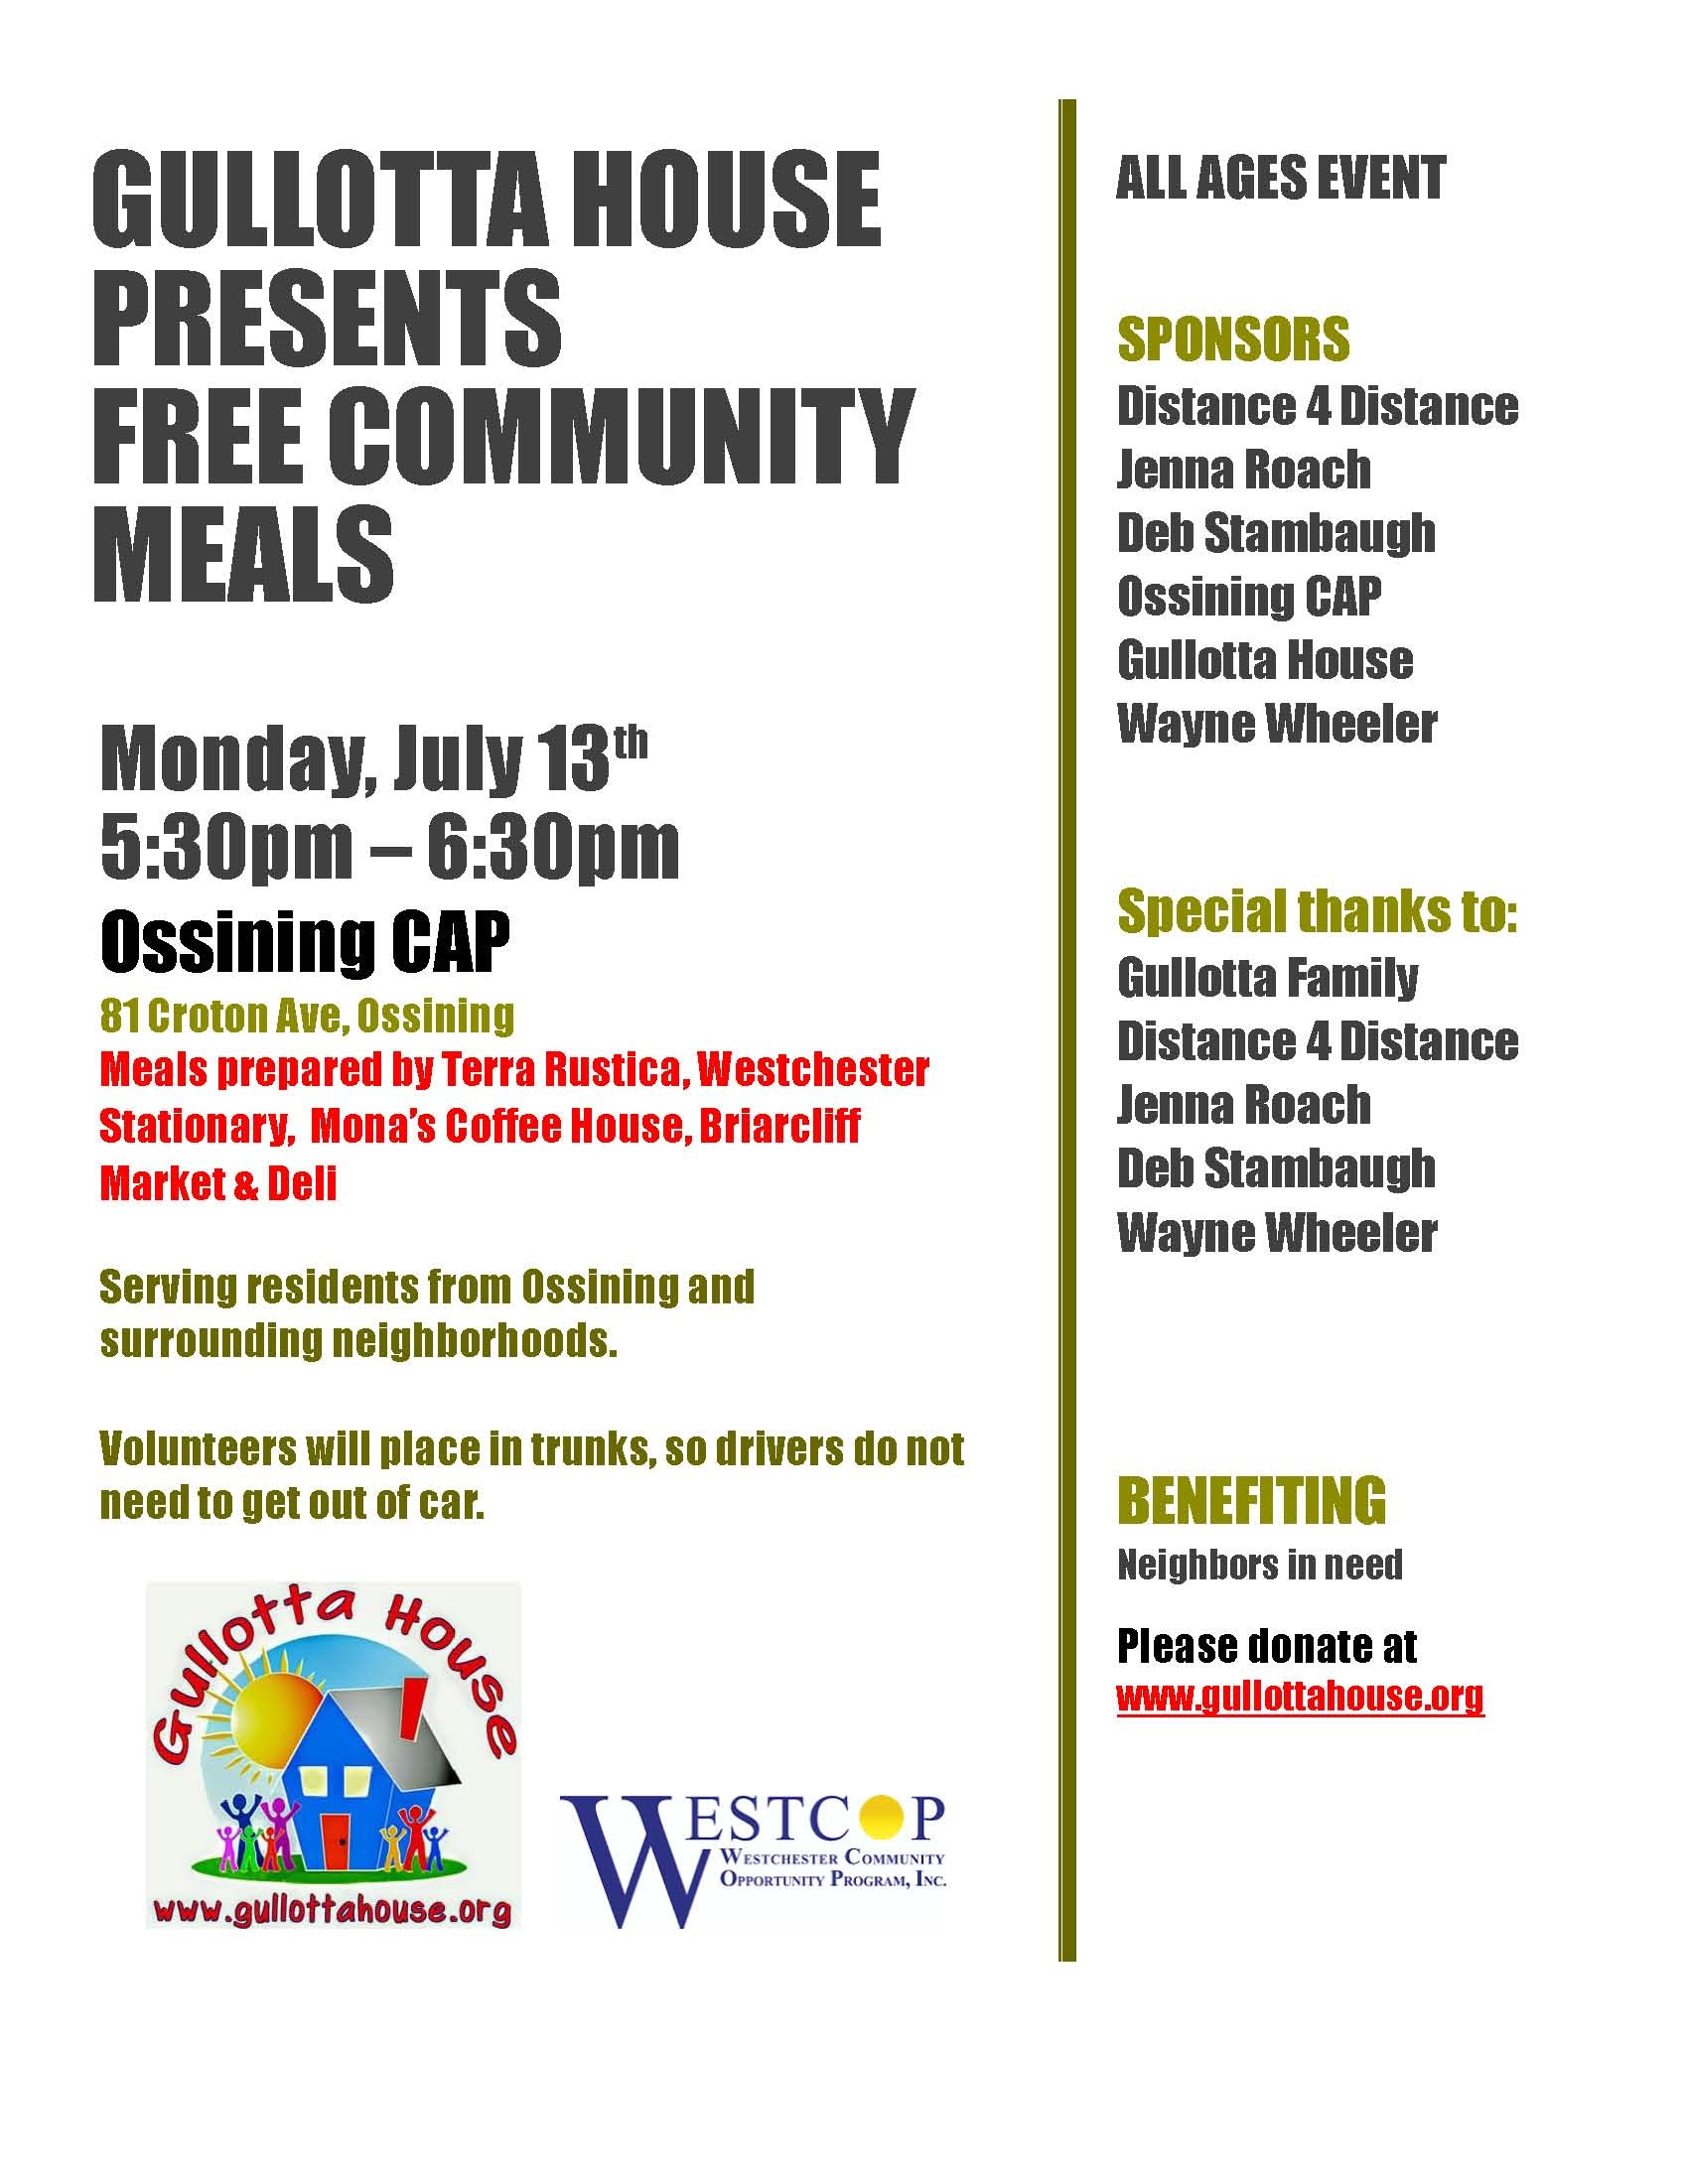 GH Free Community Meals 071320 WestCOP